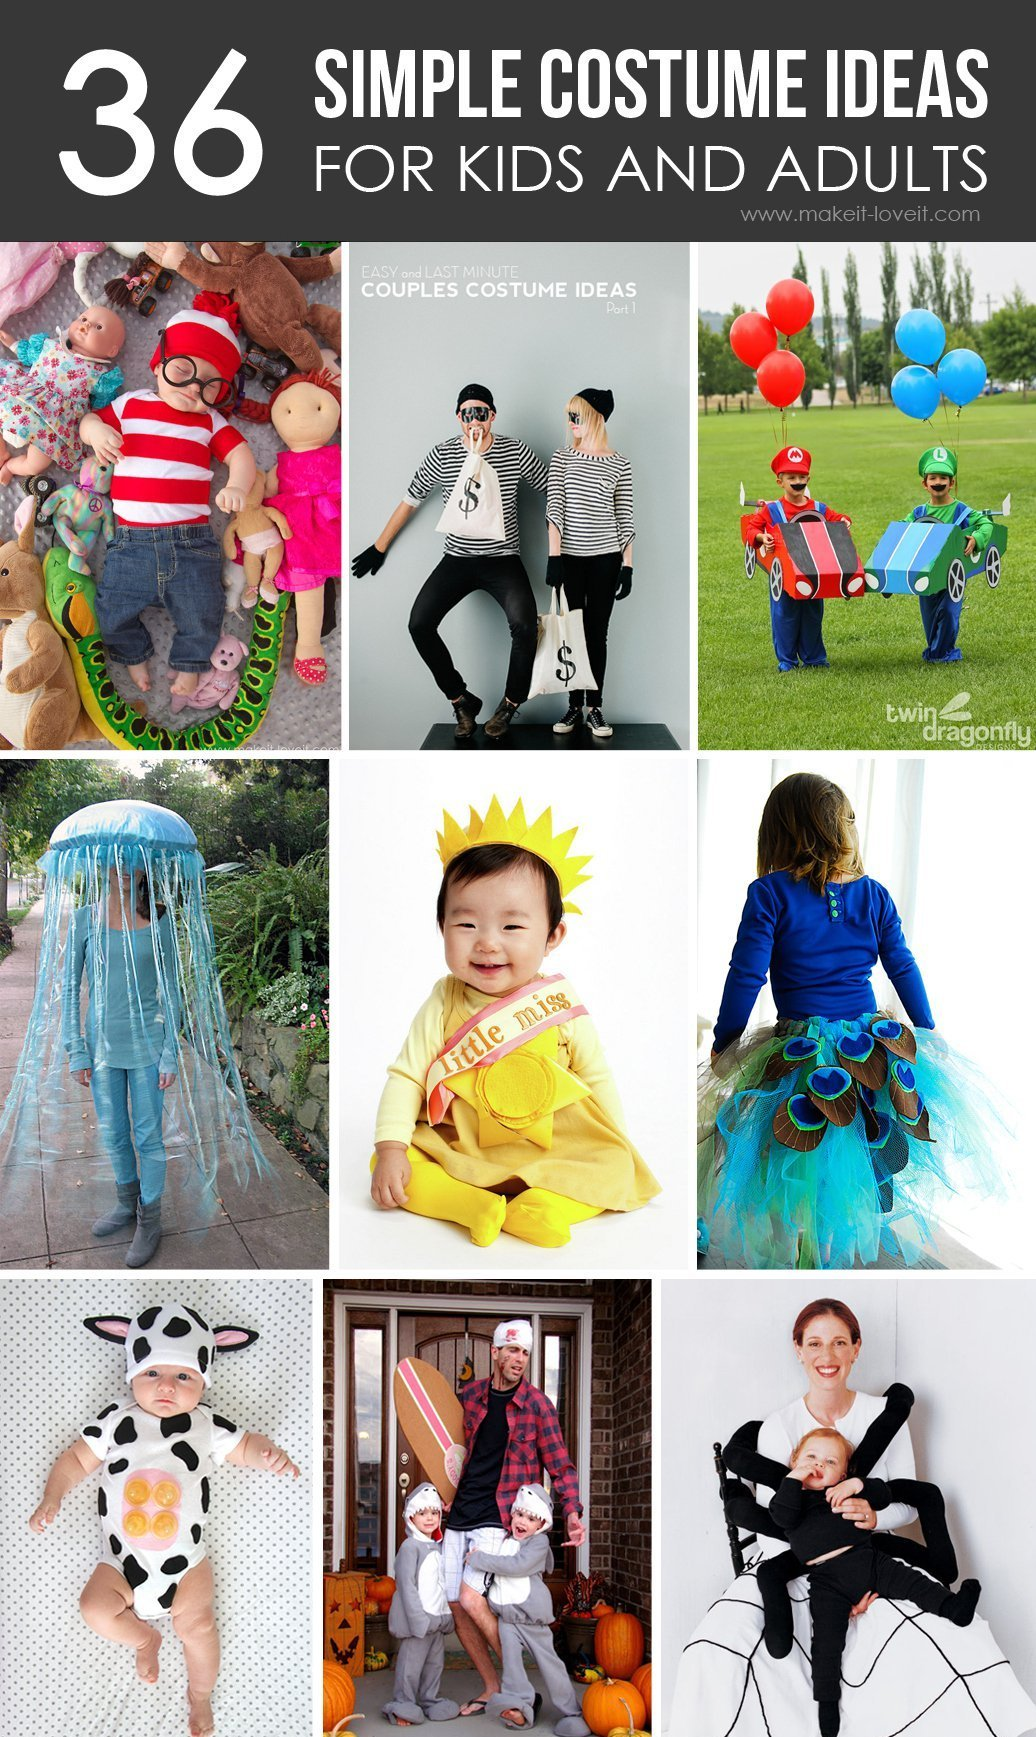 36-costume-ideas-for-kids-and-adults